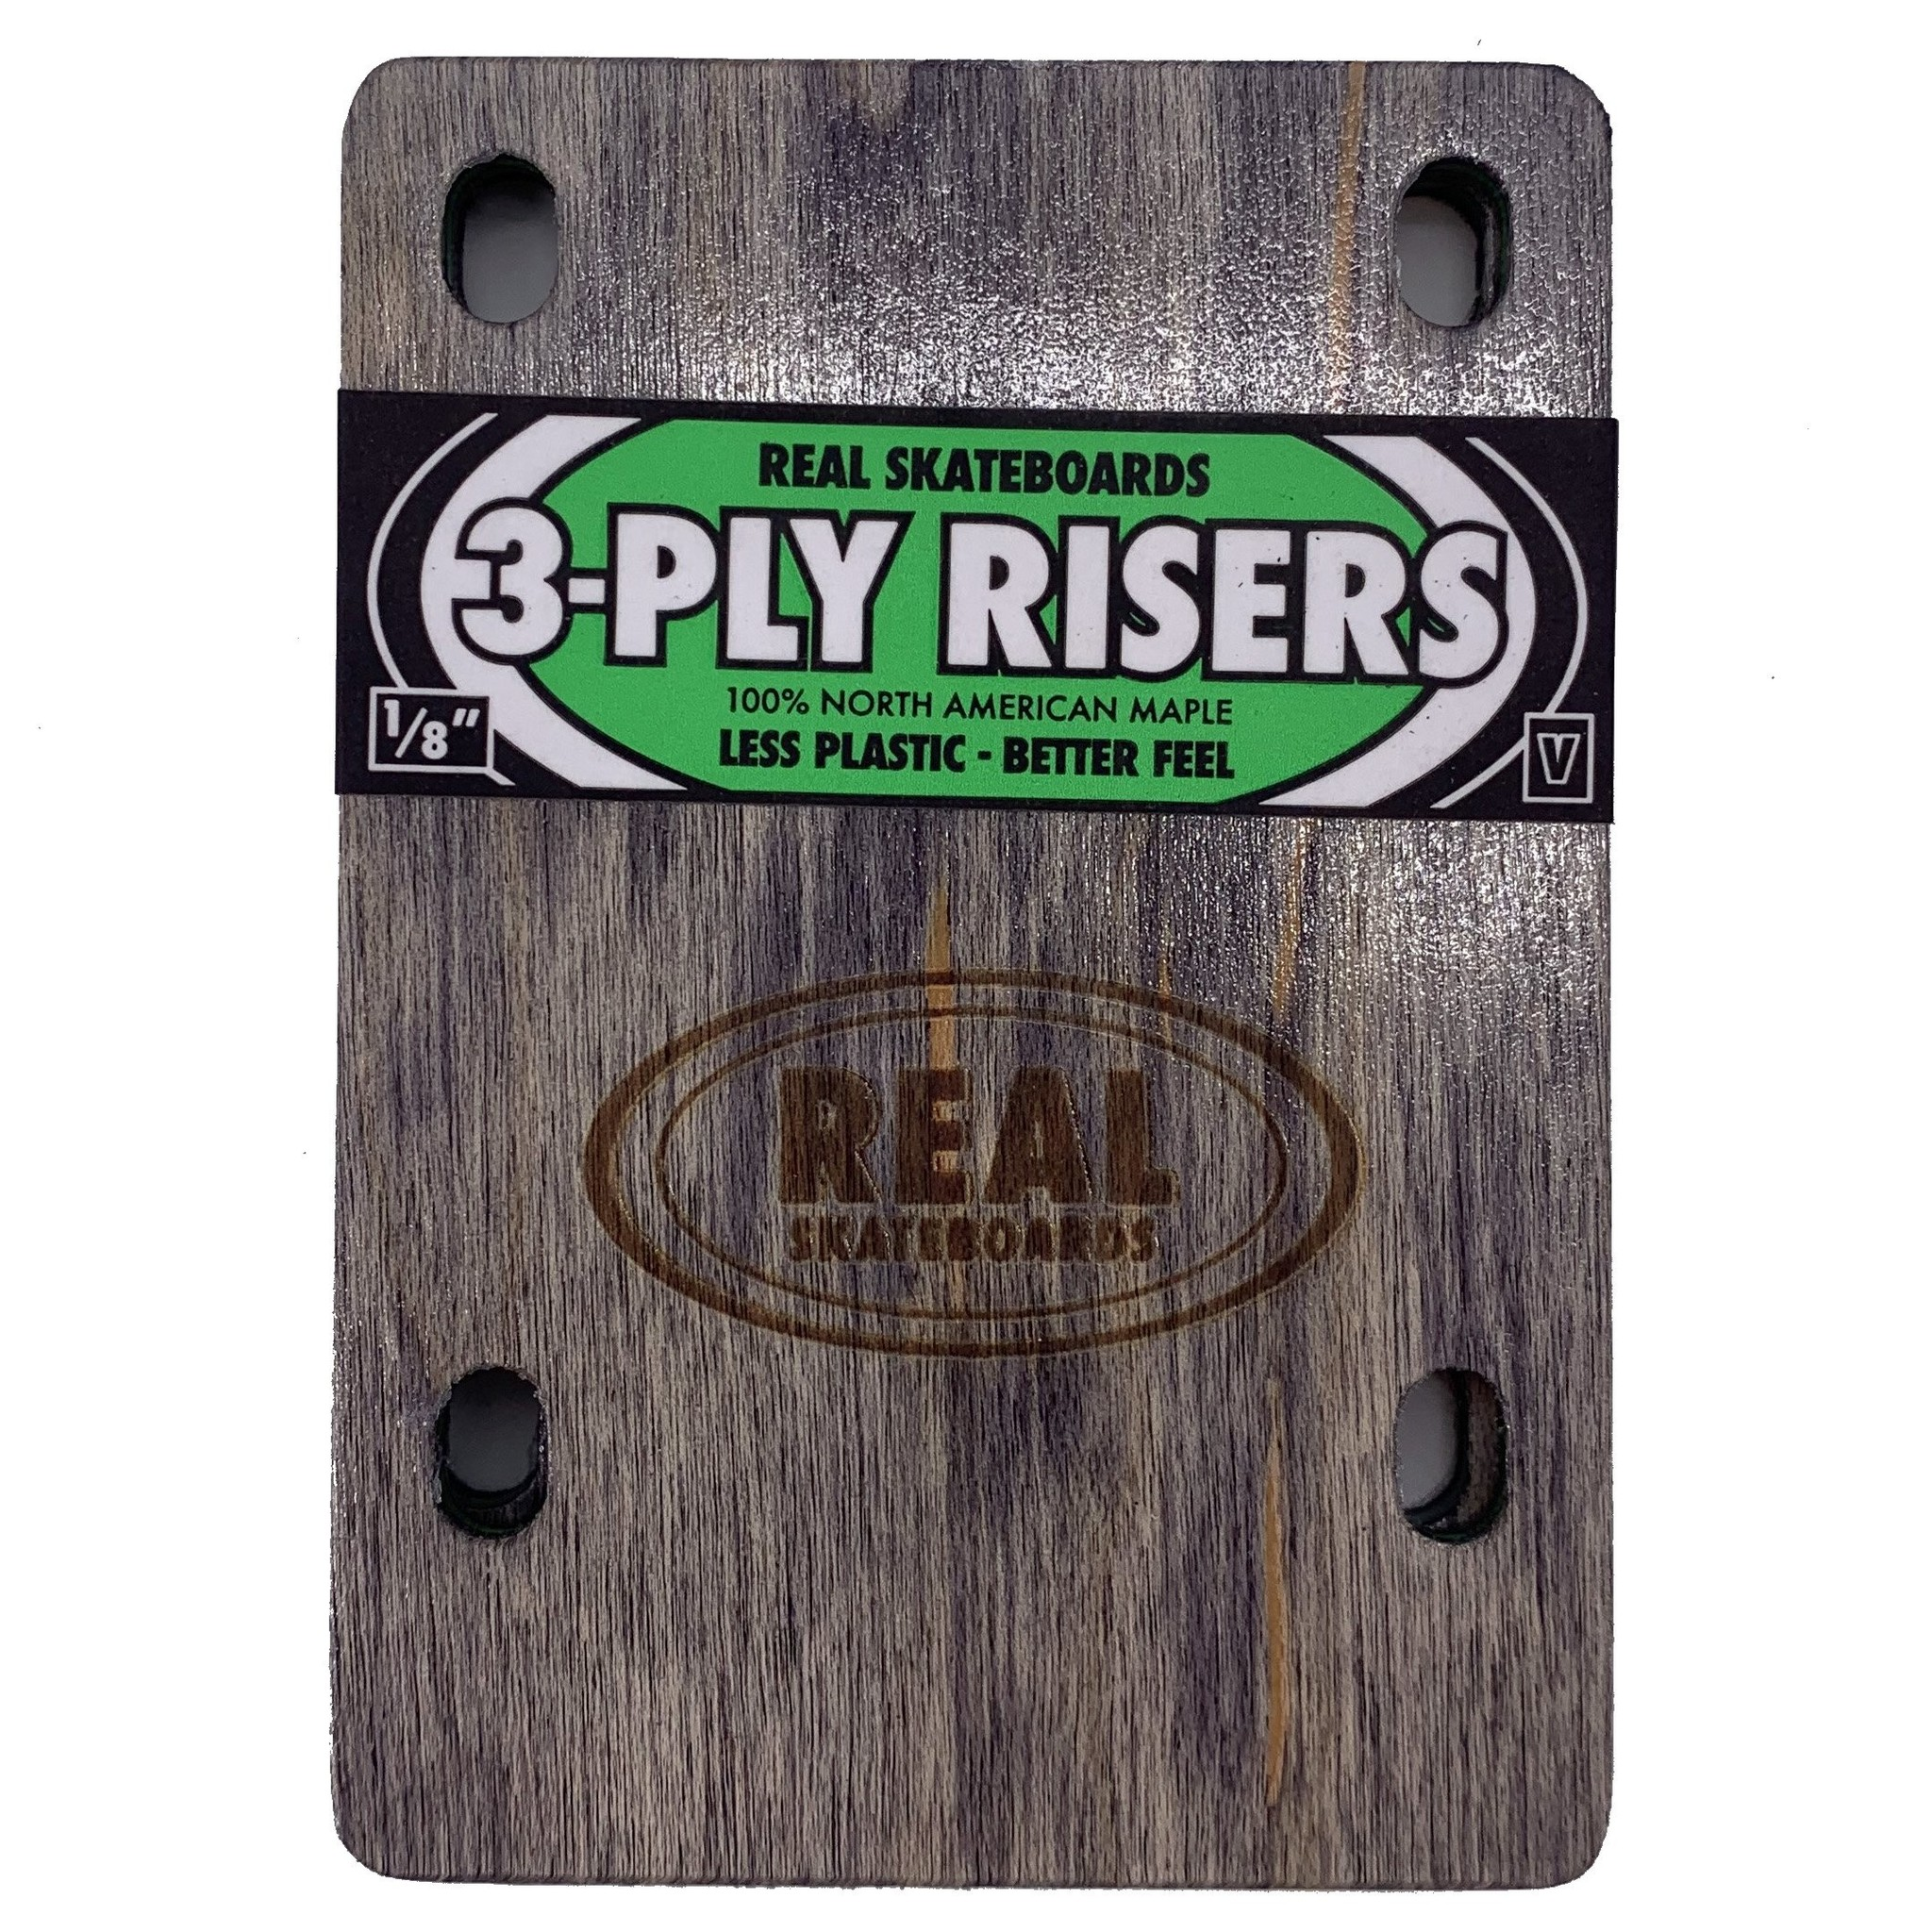 REAL REAL 3-PLY 1/8 RISERS VENTURE FIT